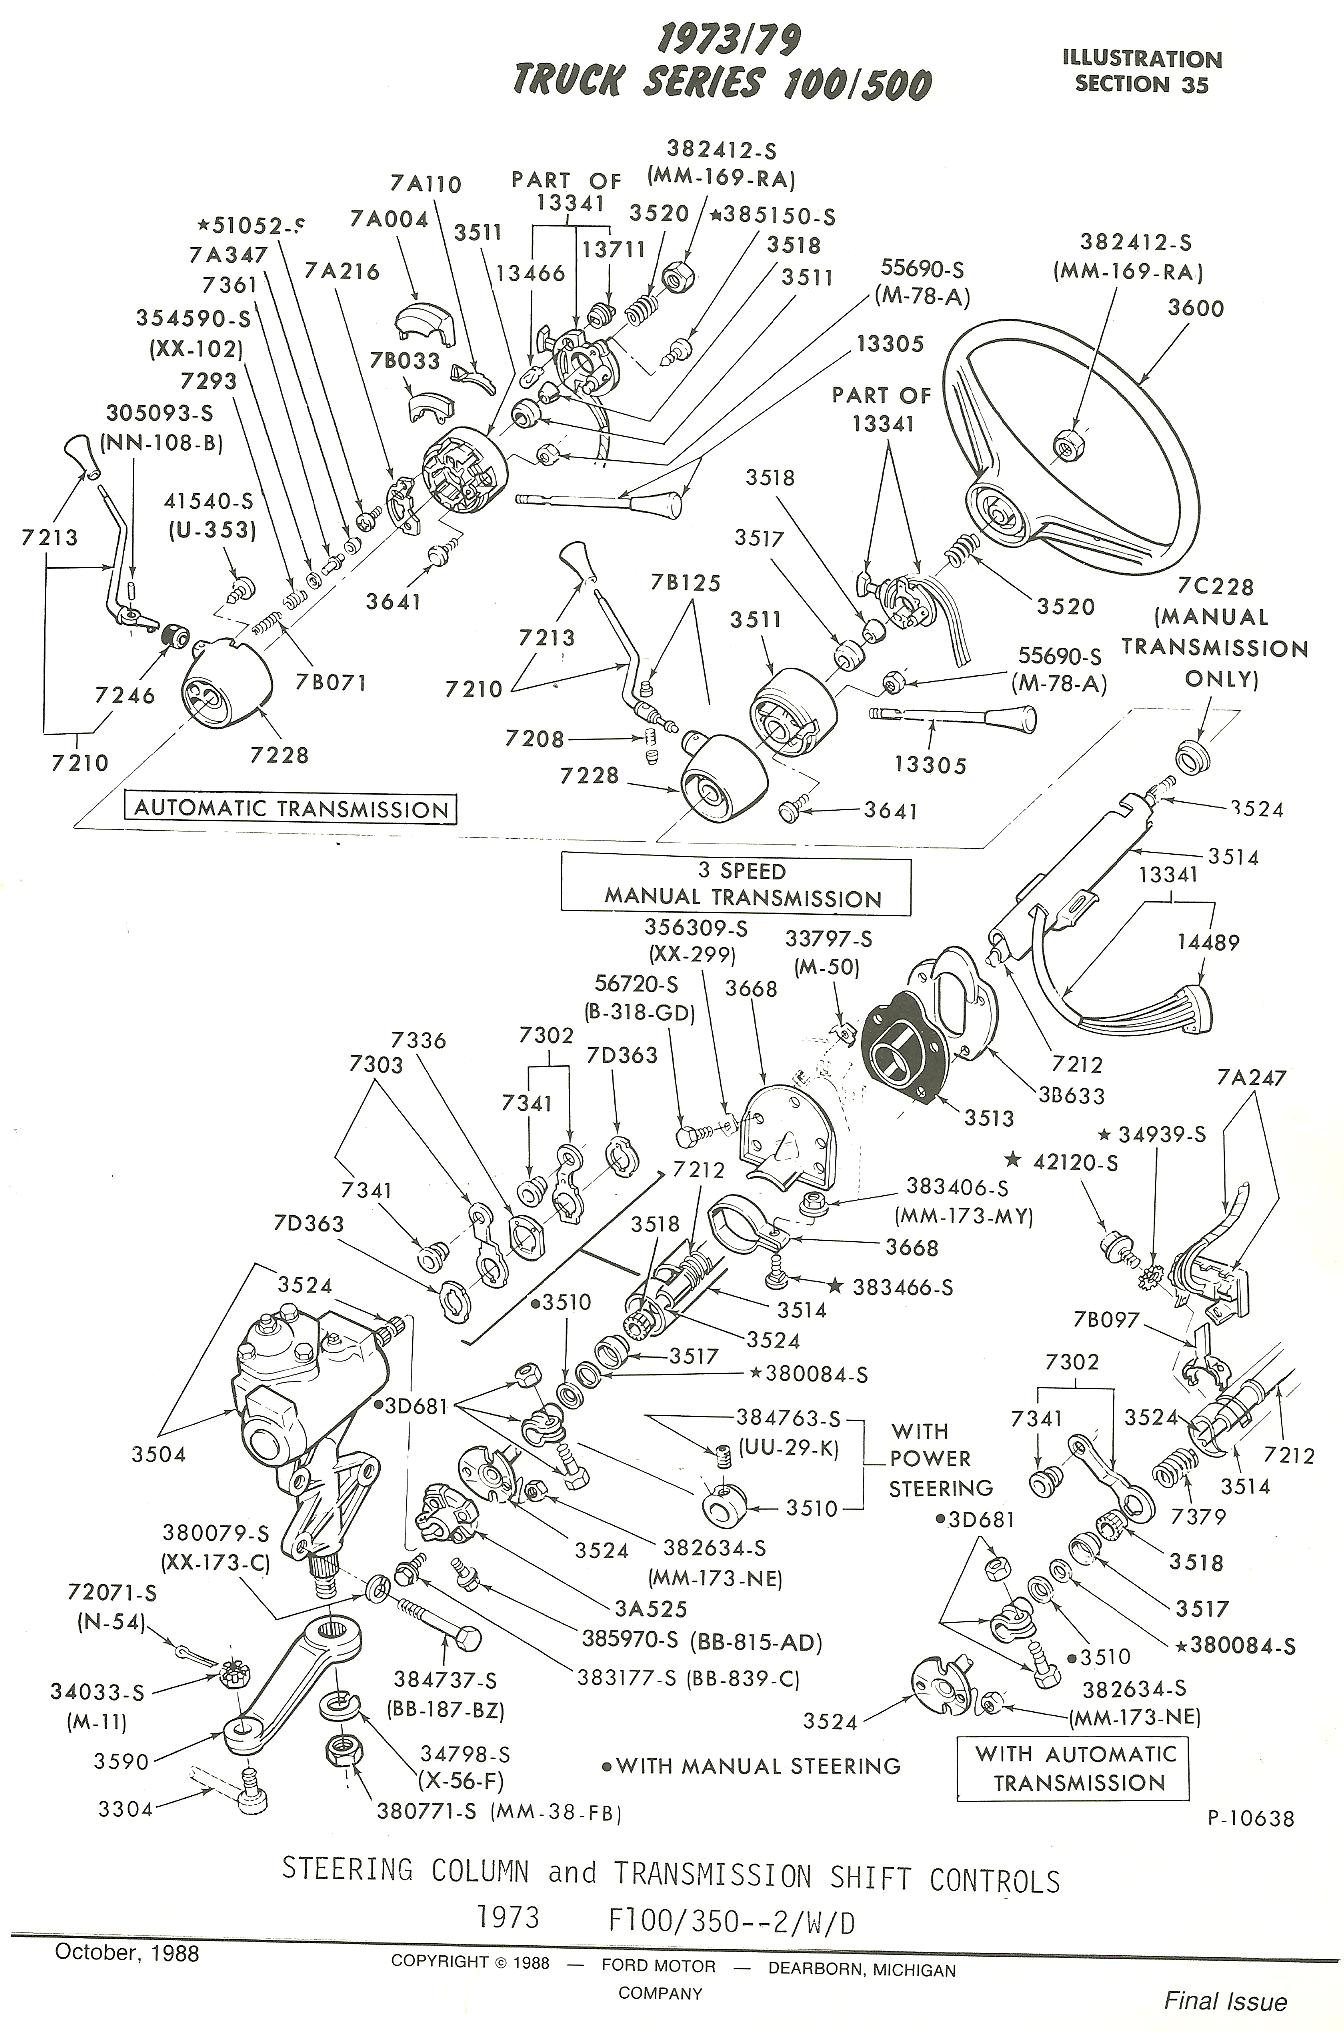 typical steering column